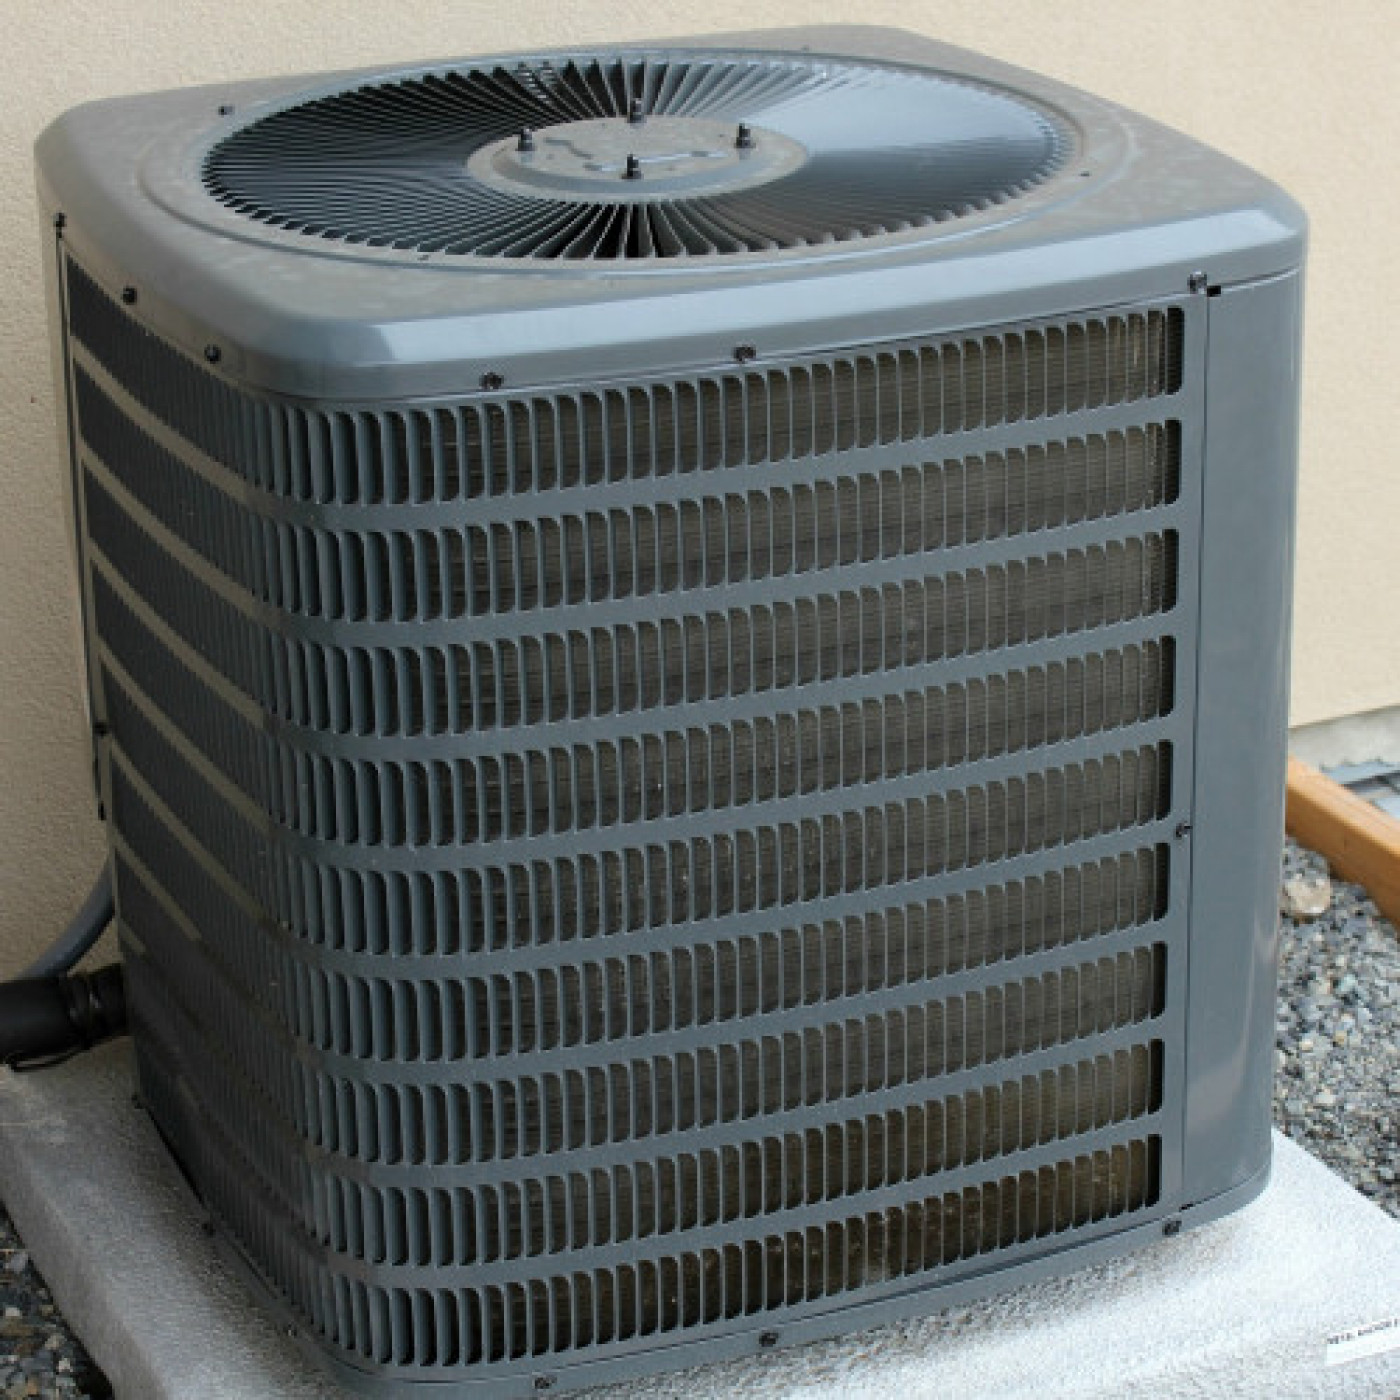 Preparing Your Air Conditioner for Spring